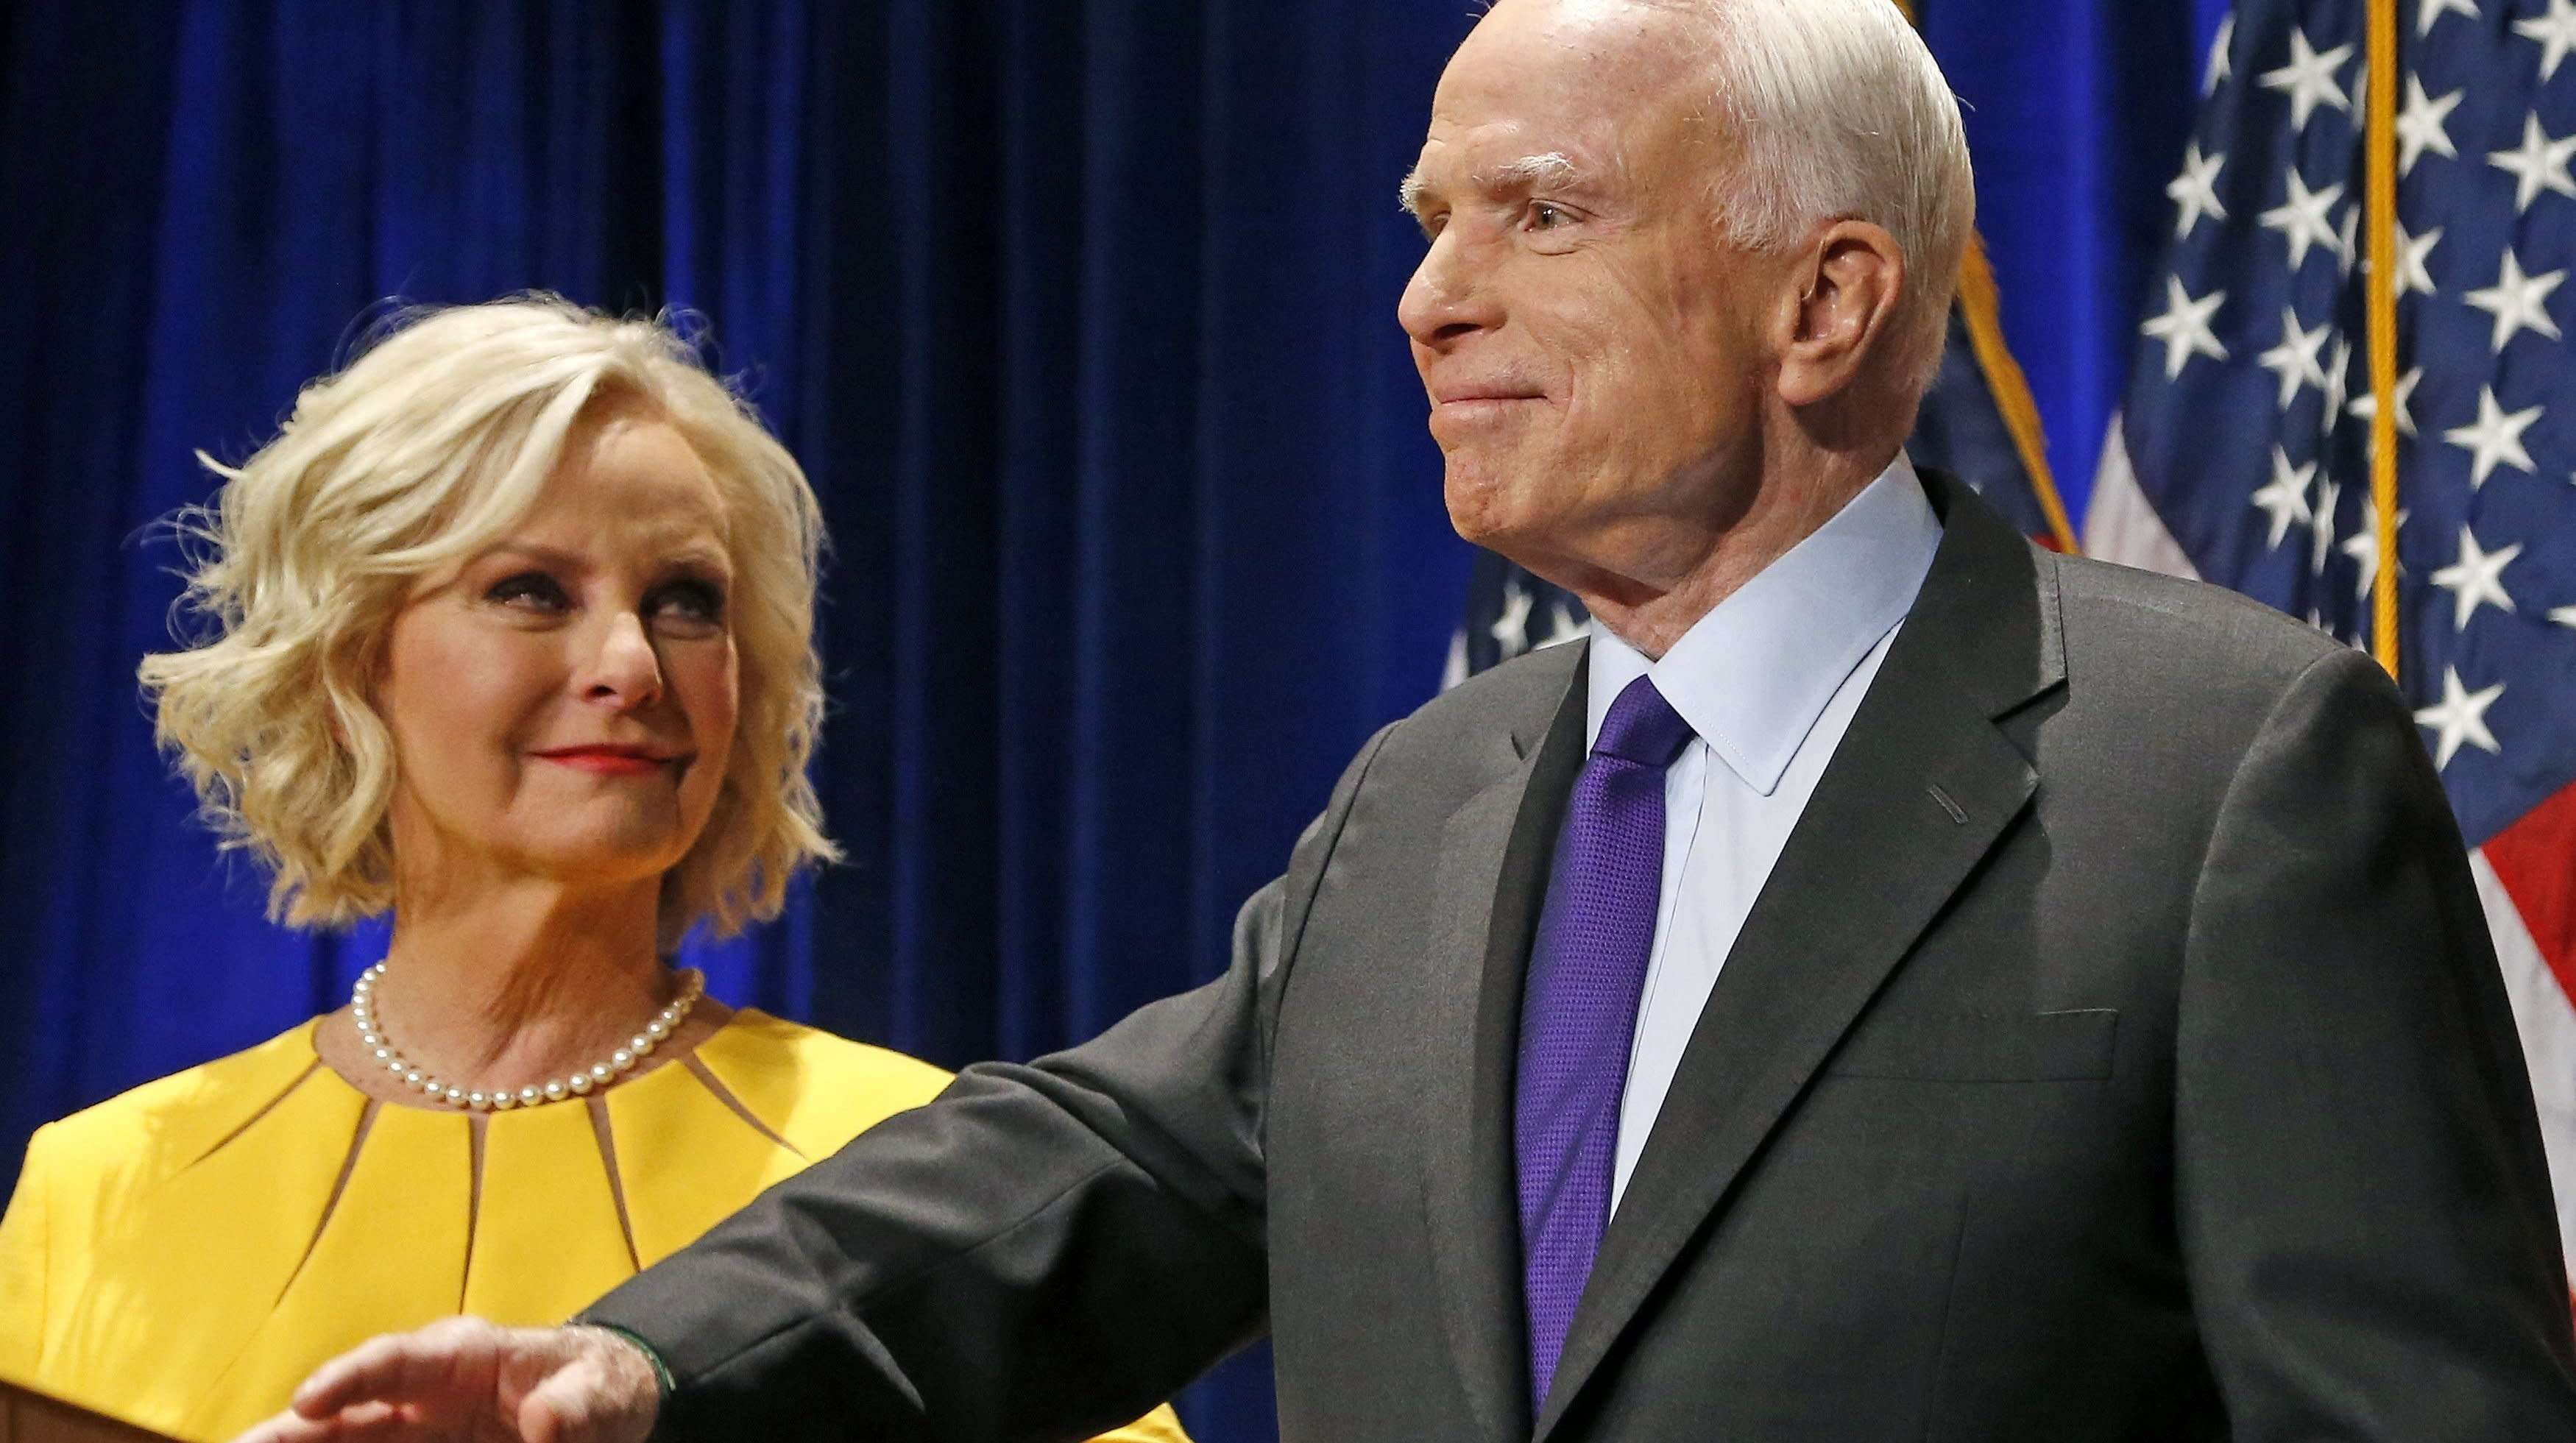 Cindy McCain Hopes Trump Learns From The Midterms